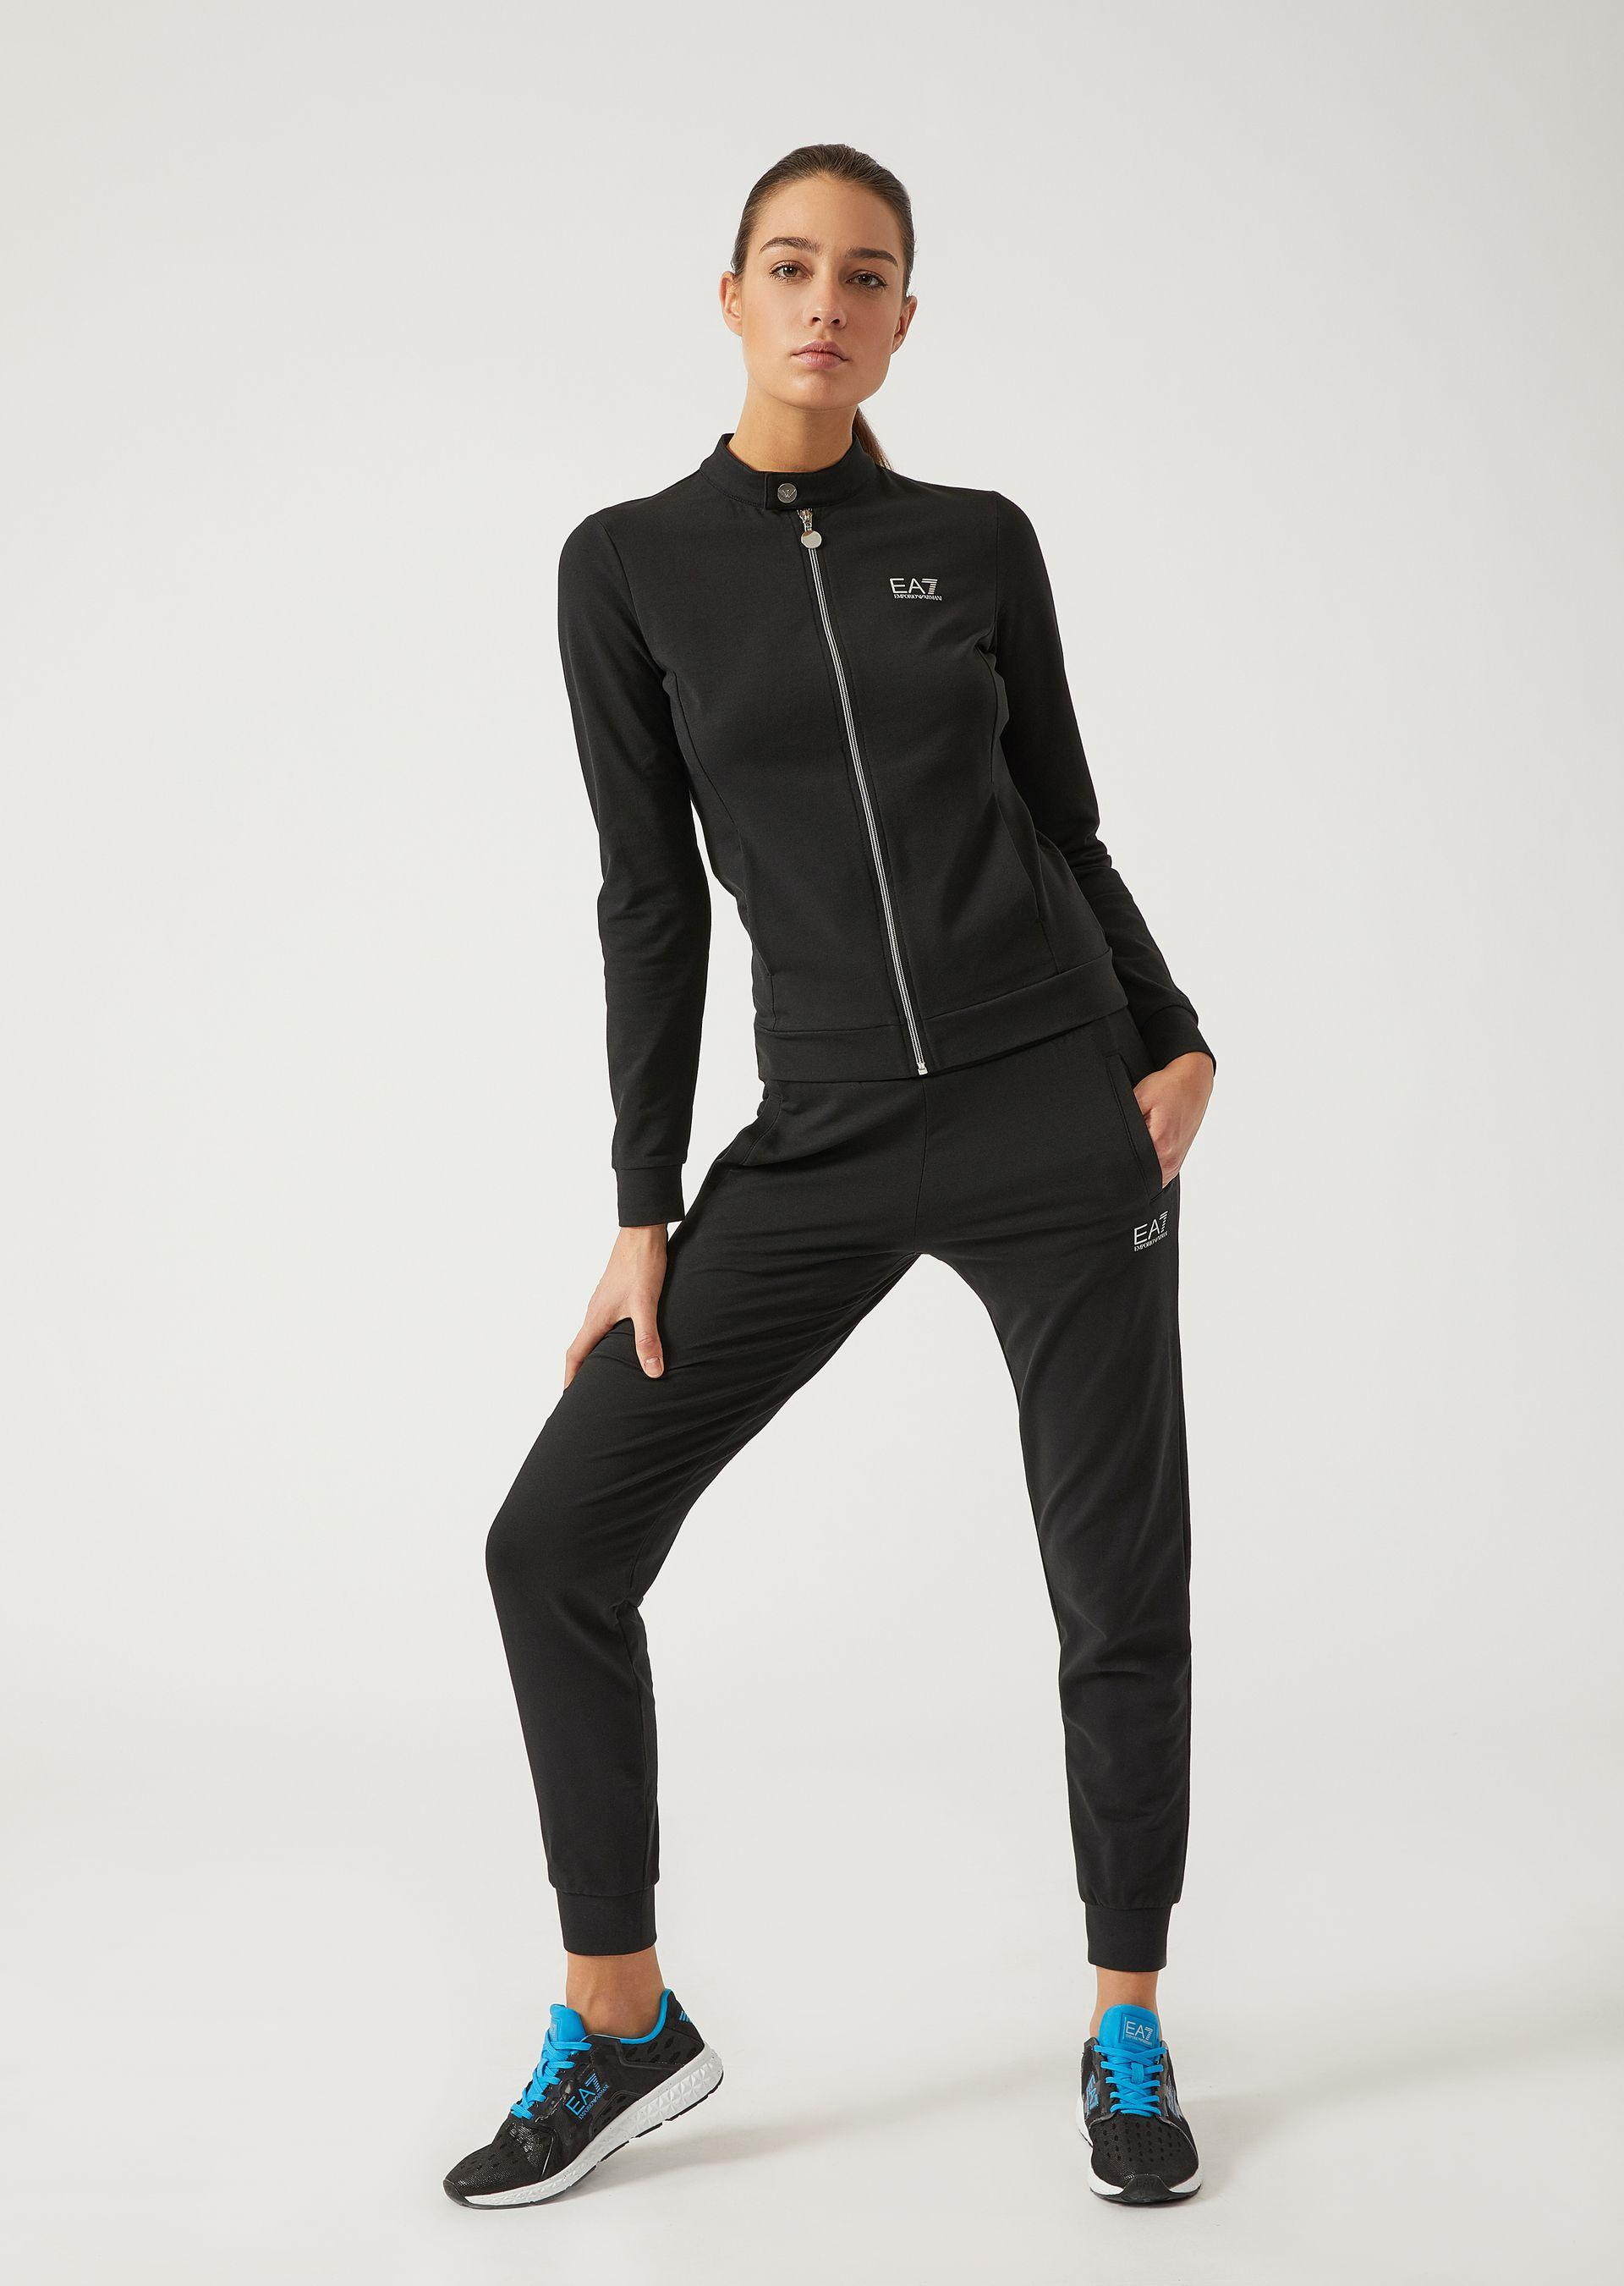 Emporio Armani Tracksuits - Item 43200520 In Black ; Navy Blue